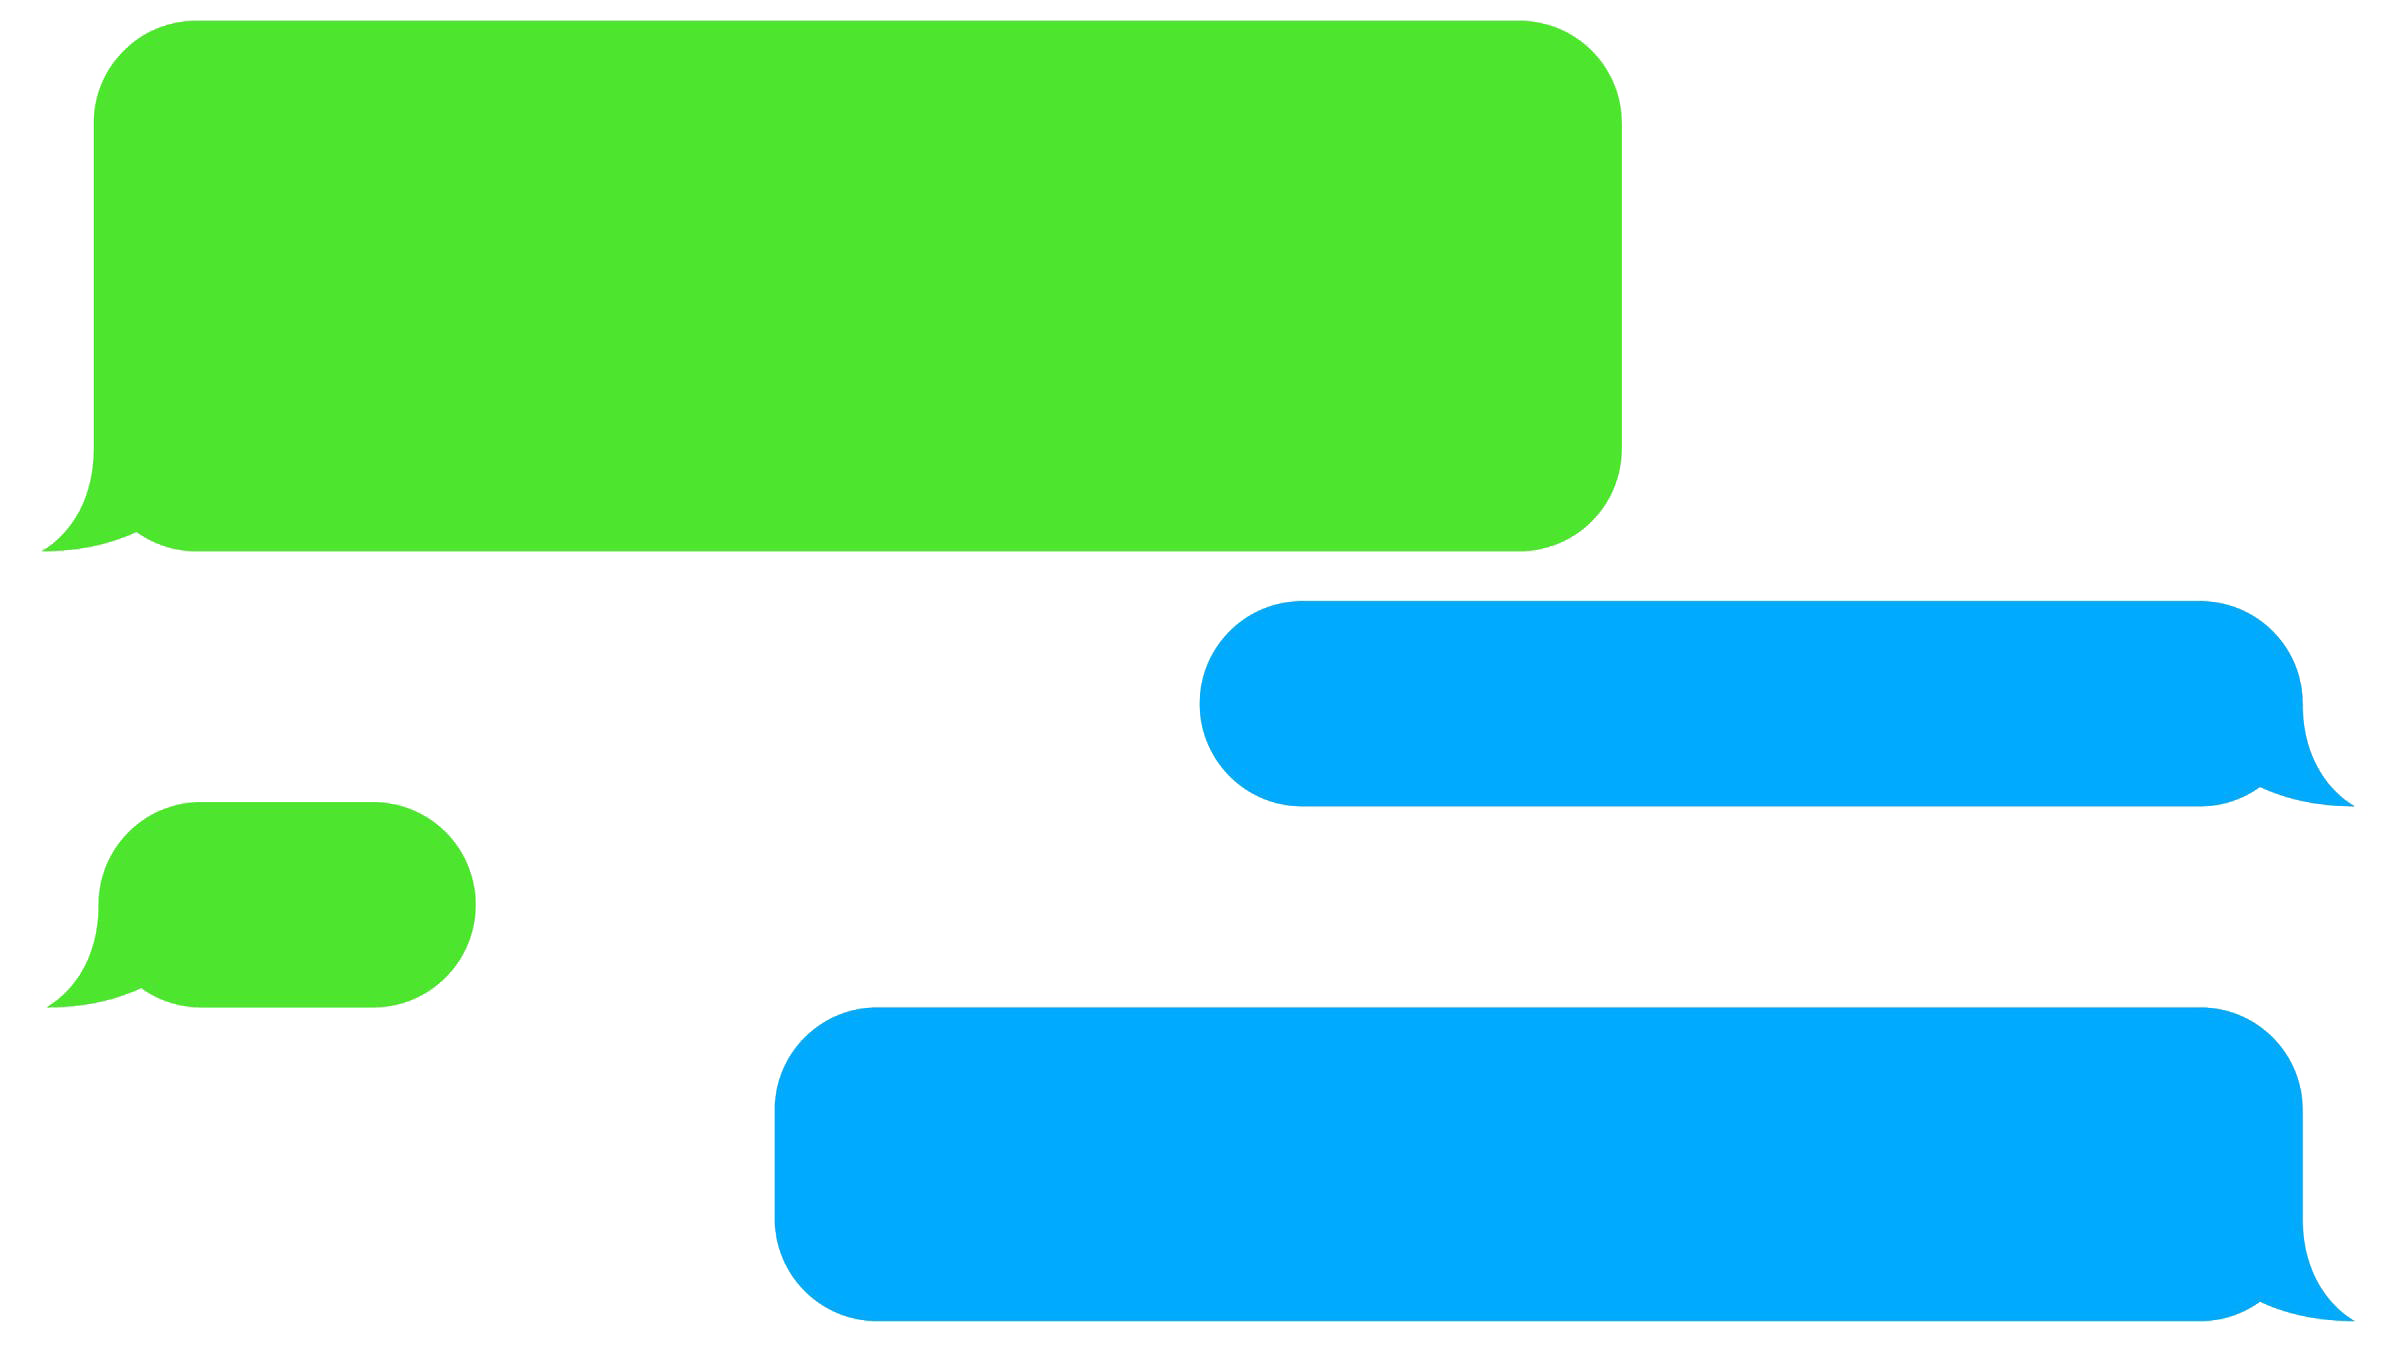 Text Message PNG Images Transparent Free Download.